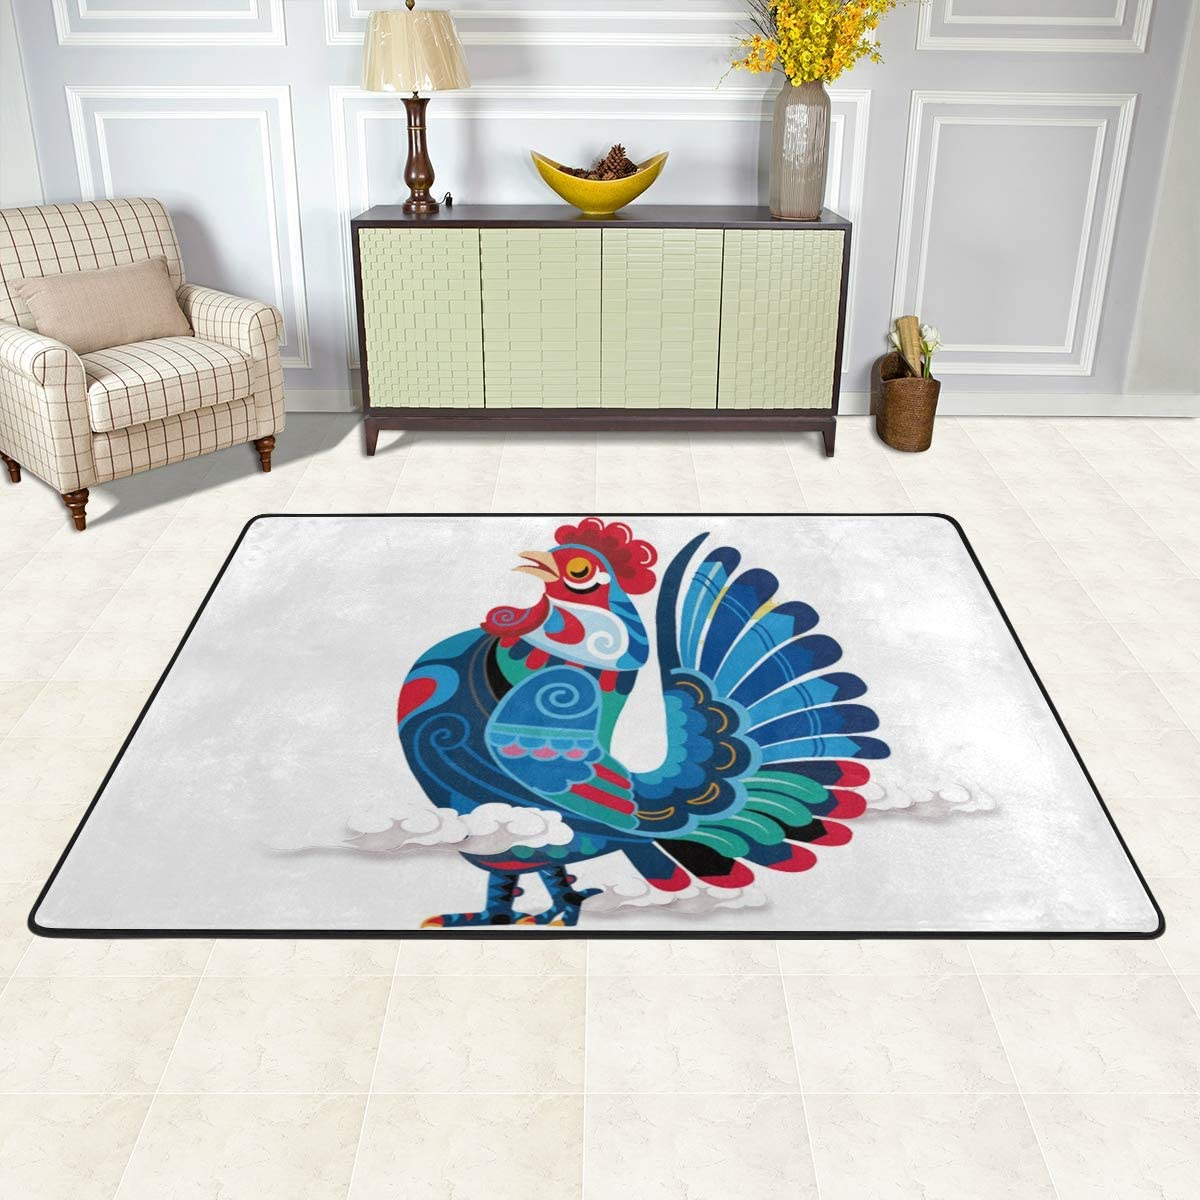 Amazon Com Malplena Rooster Painted Rugs For Living Room Doormat